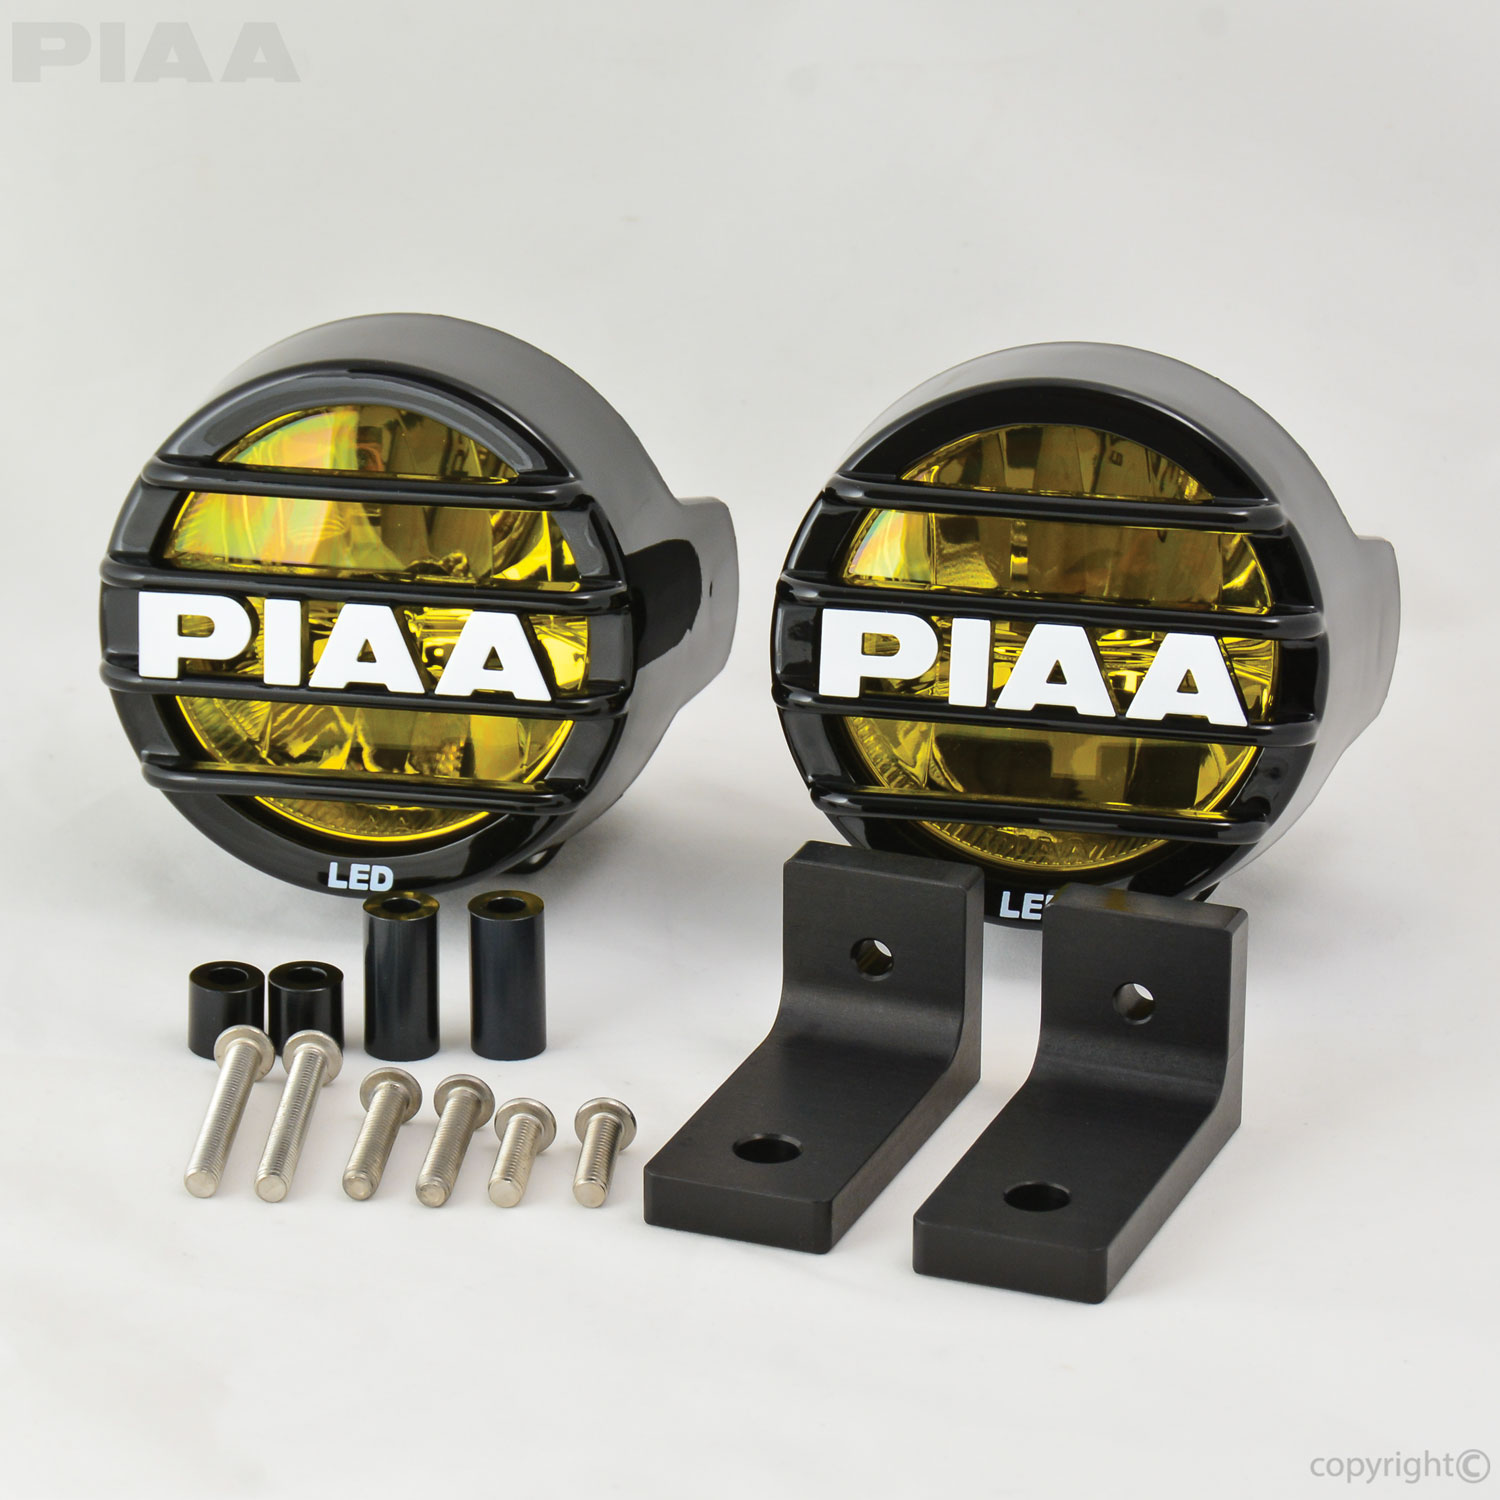 Wiring Diagram For Piaa Lights Page 3 And Schematics Fog Light Relay Awesome Images Best Image Wire